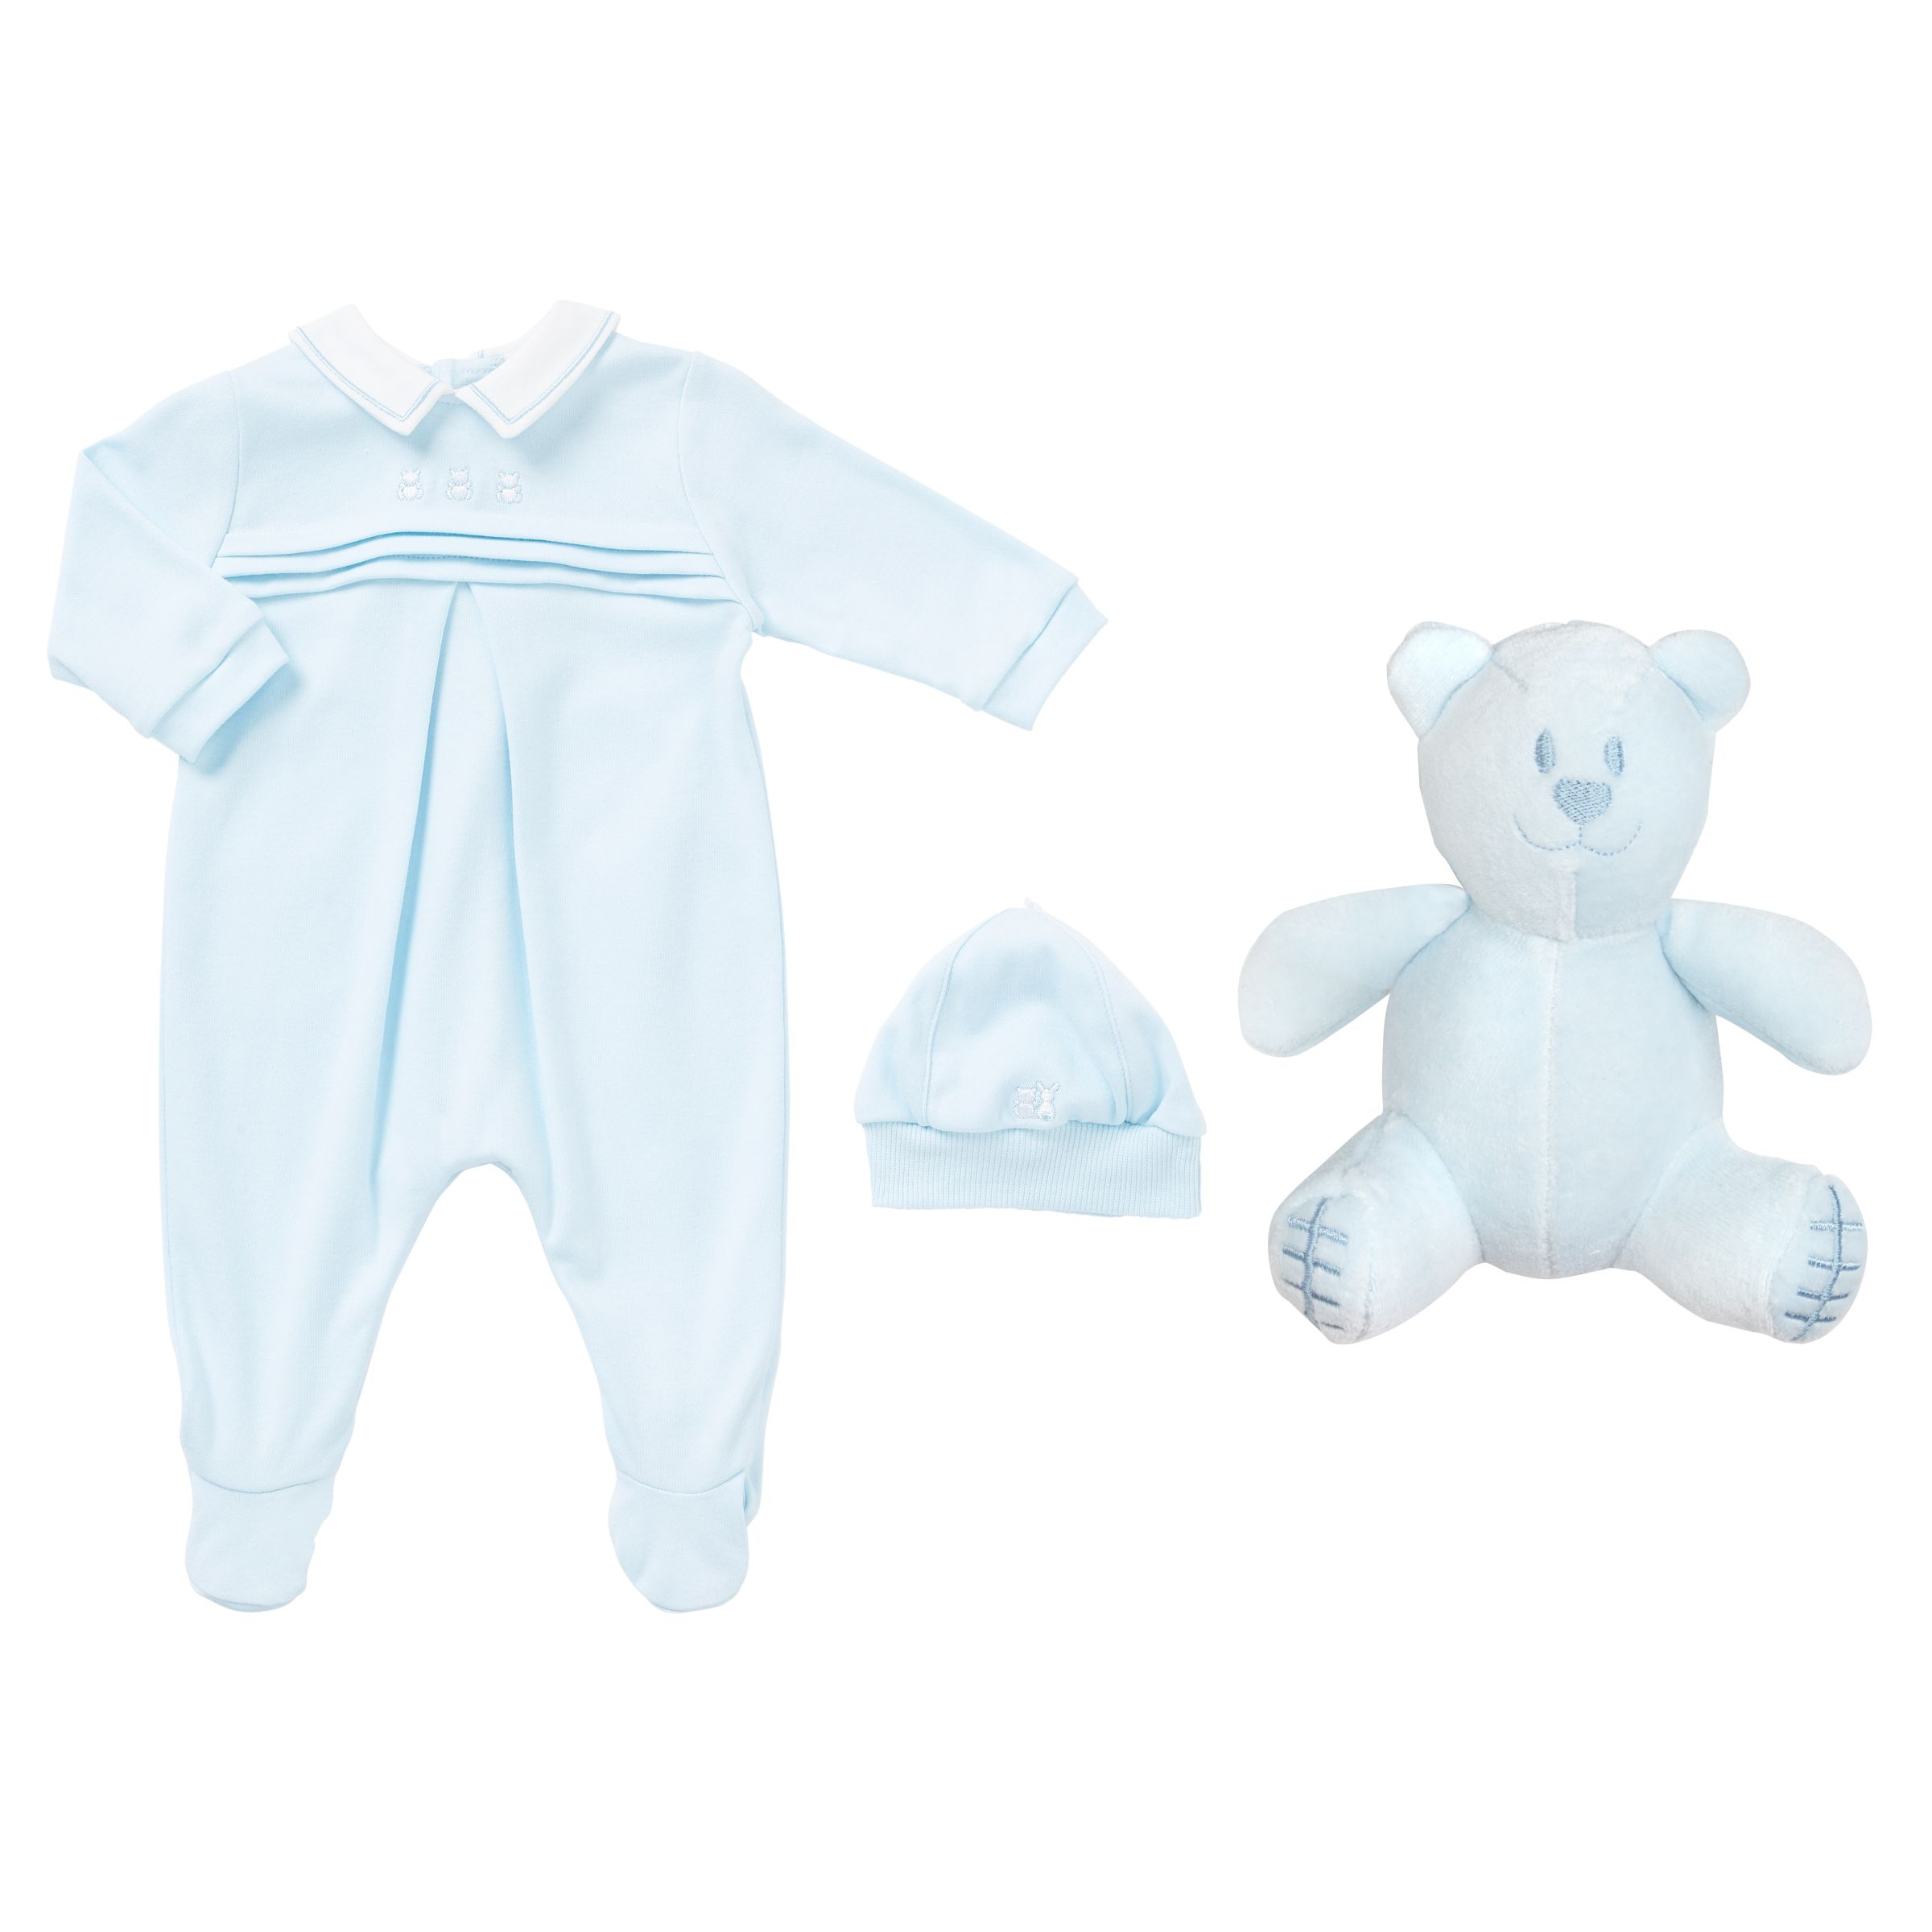 Emile et Rose Emile et Rose Baby Kieran Romper and Hat Set, Blue